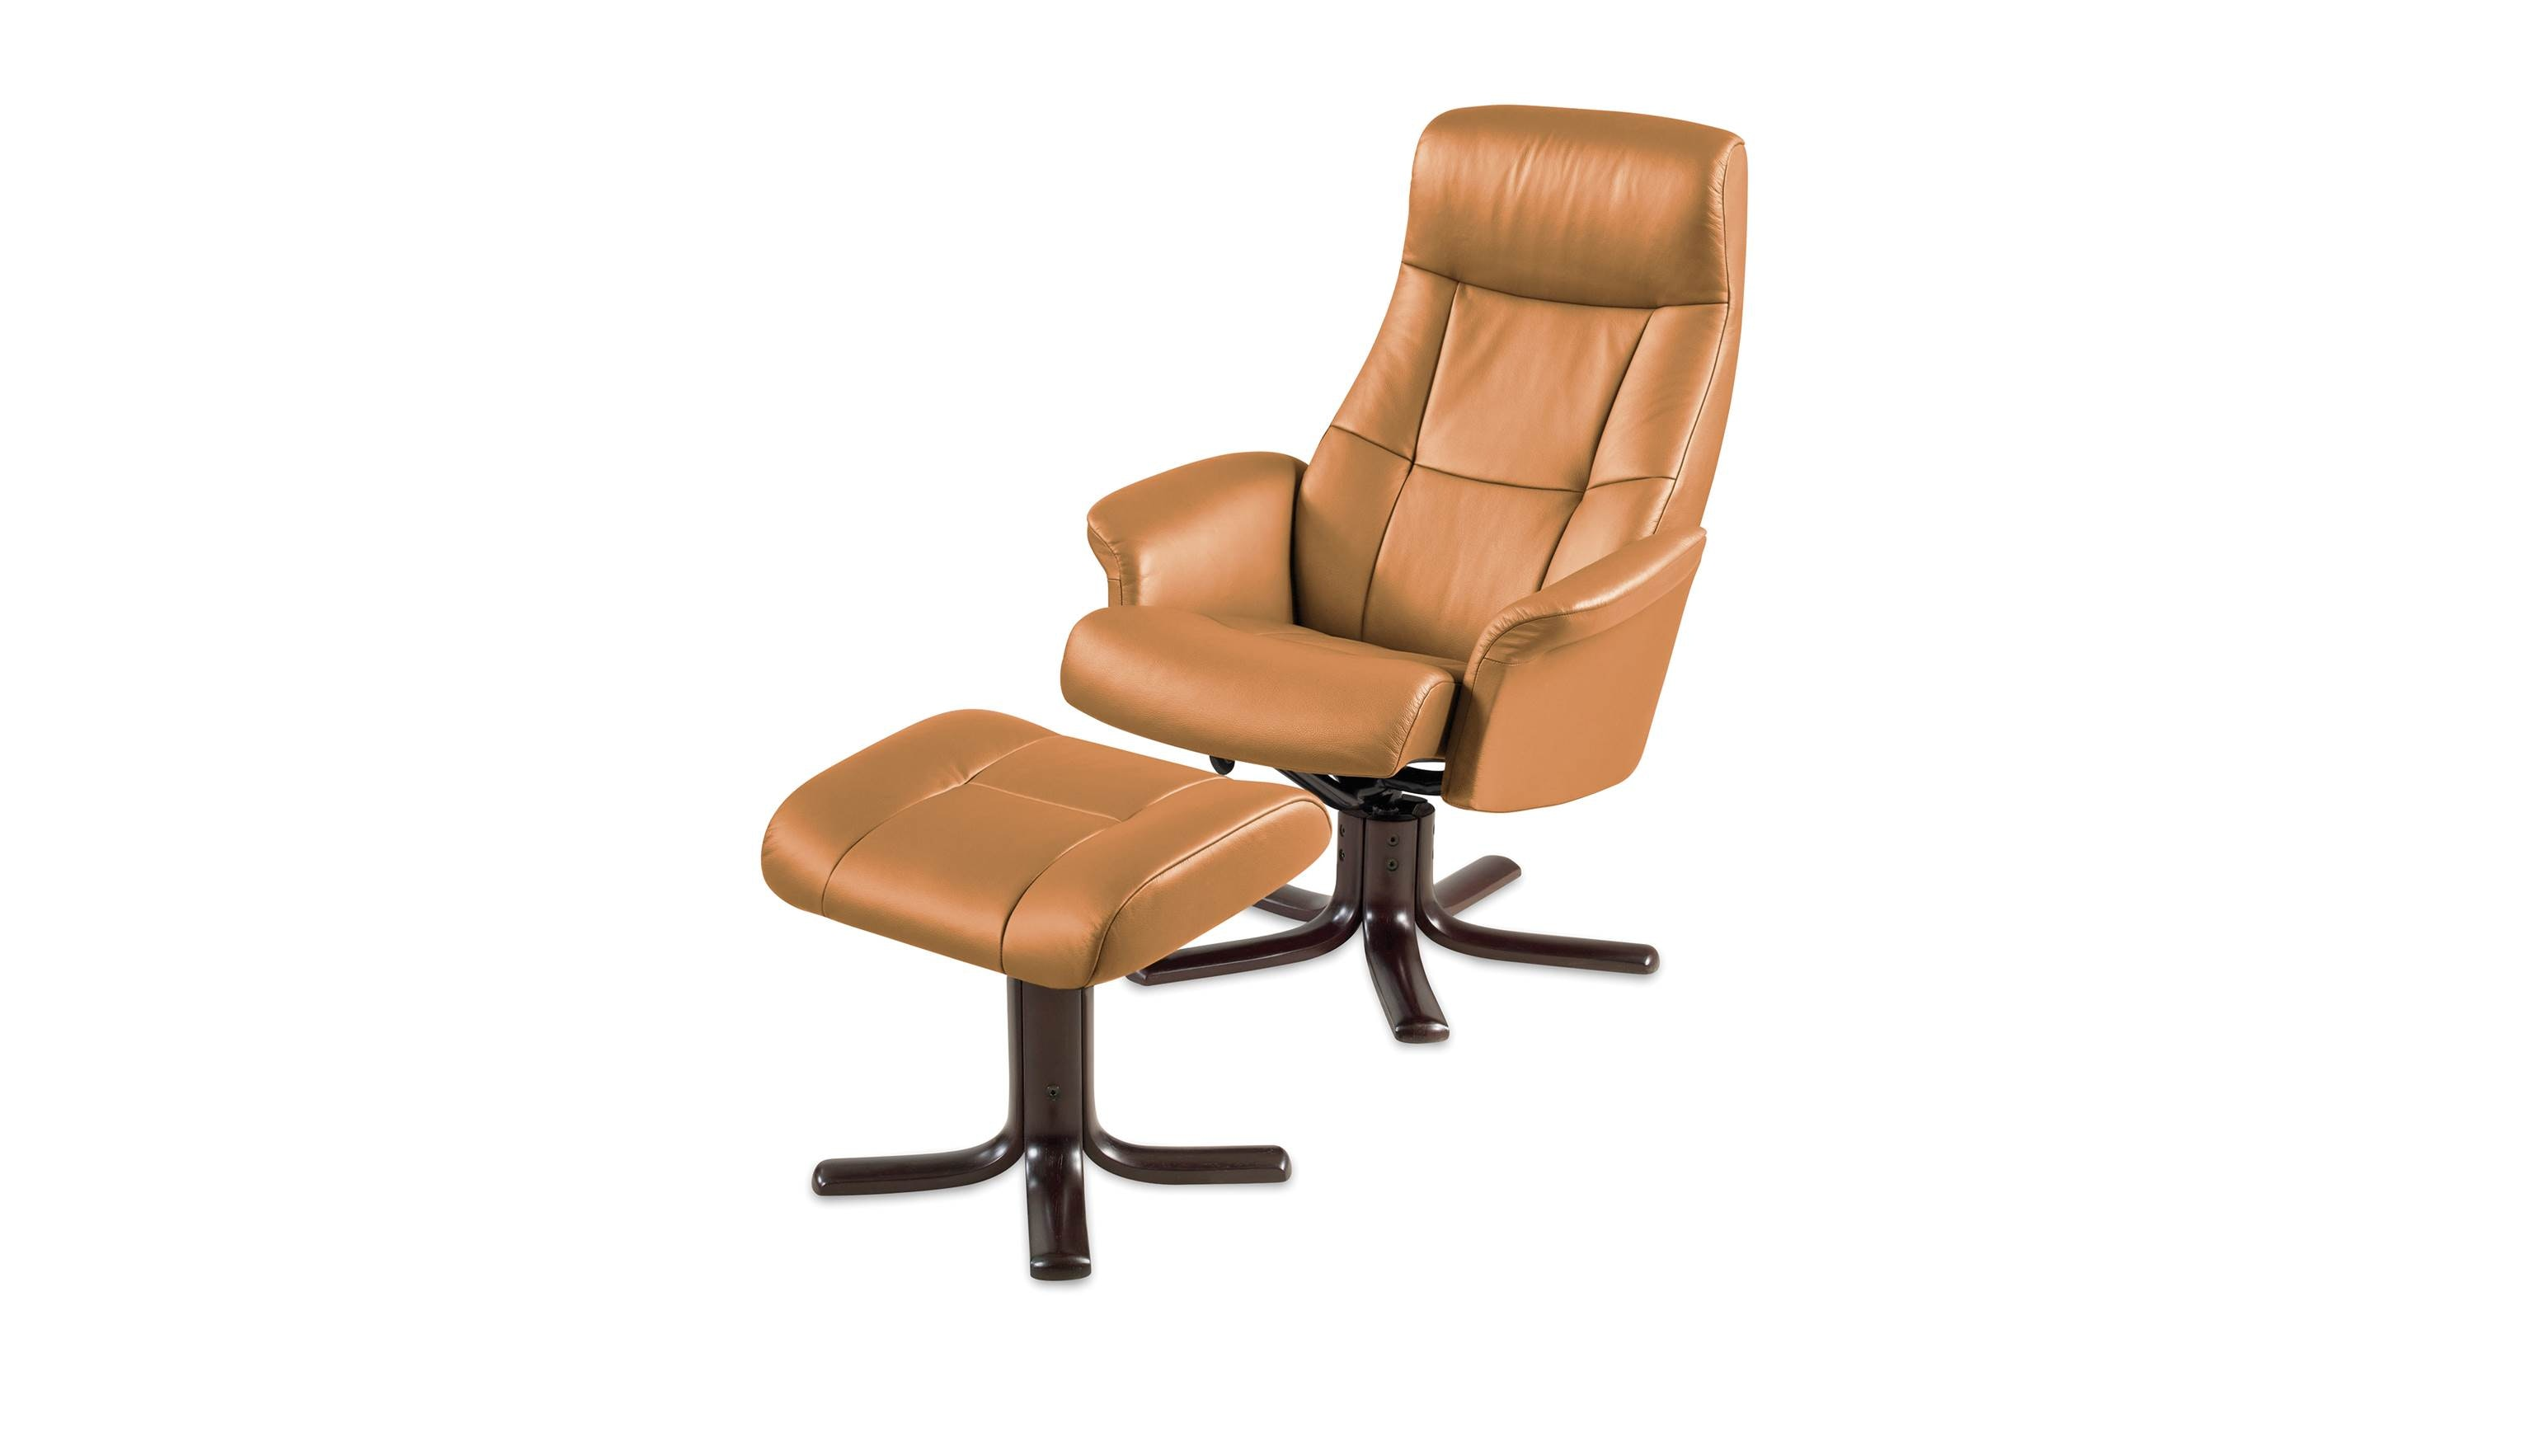 IMG Scandi 120 Recliner Armchair